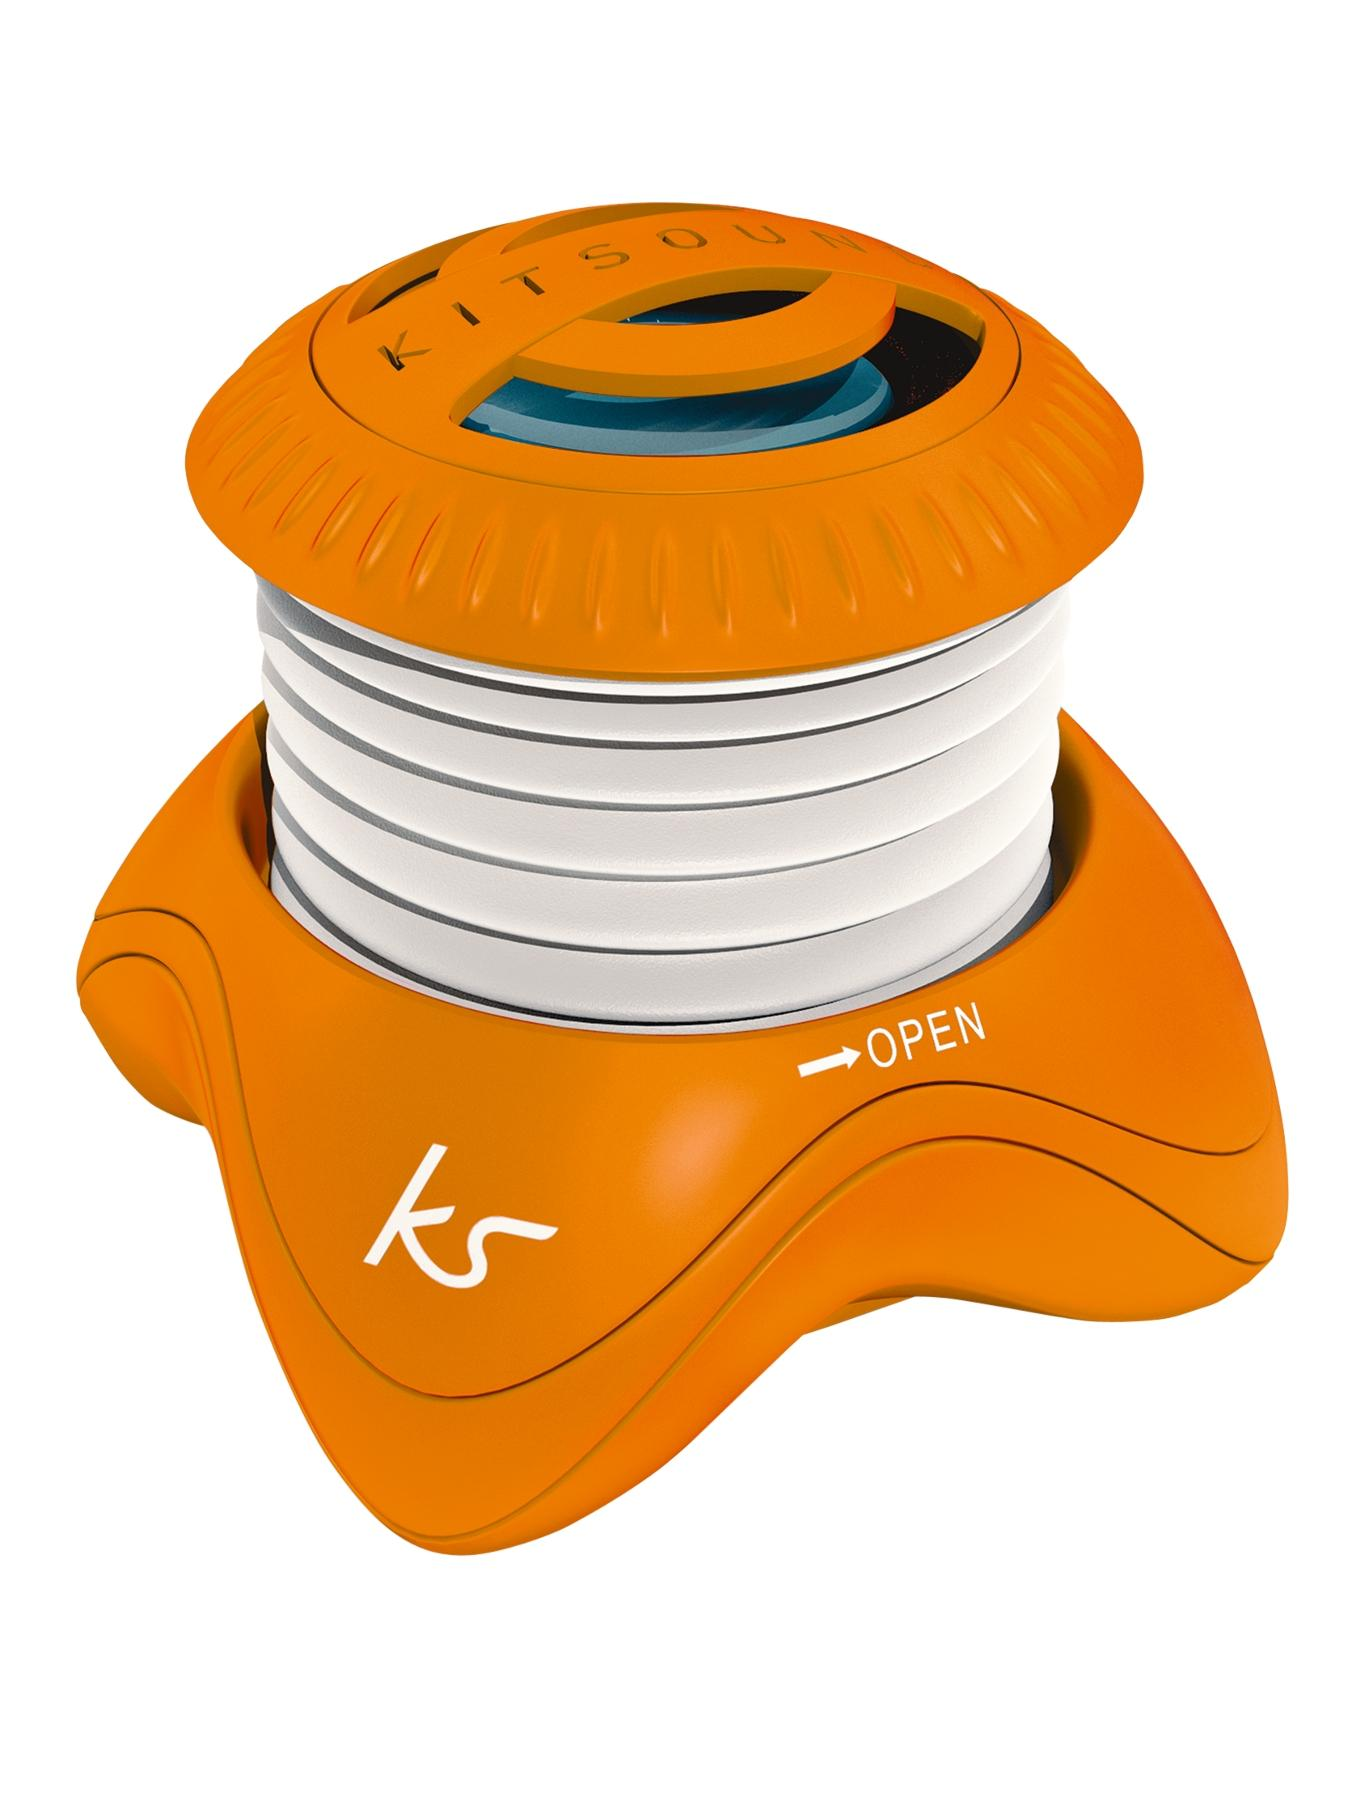 Kitsound Portable Capsule Speaker - Orange